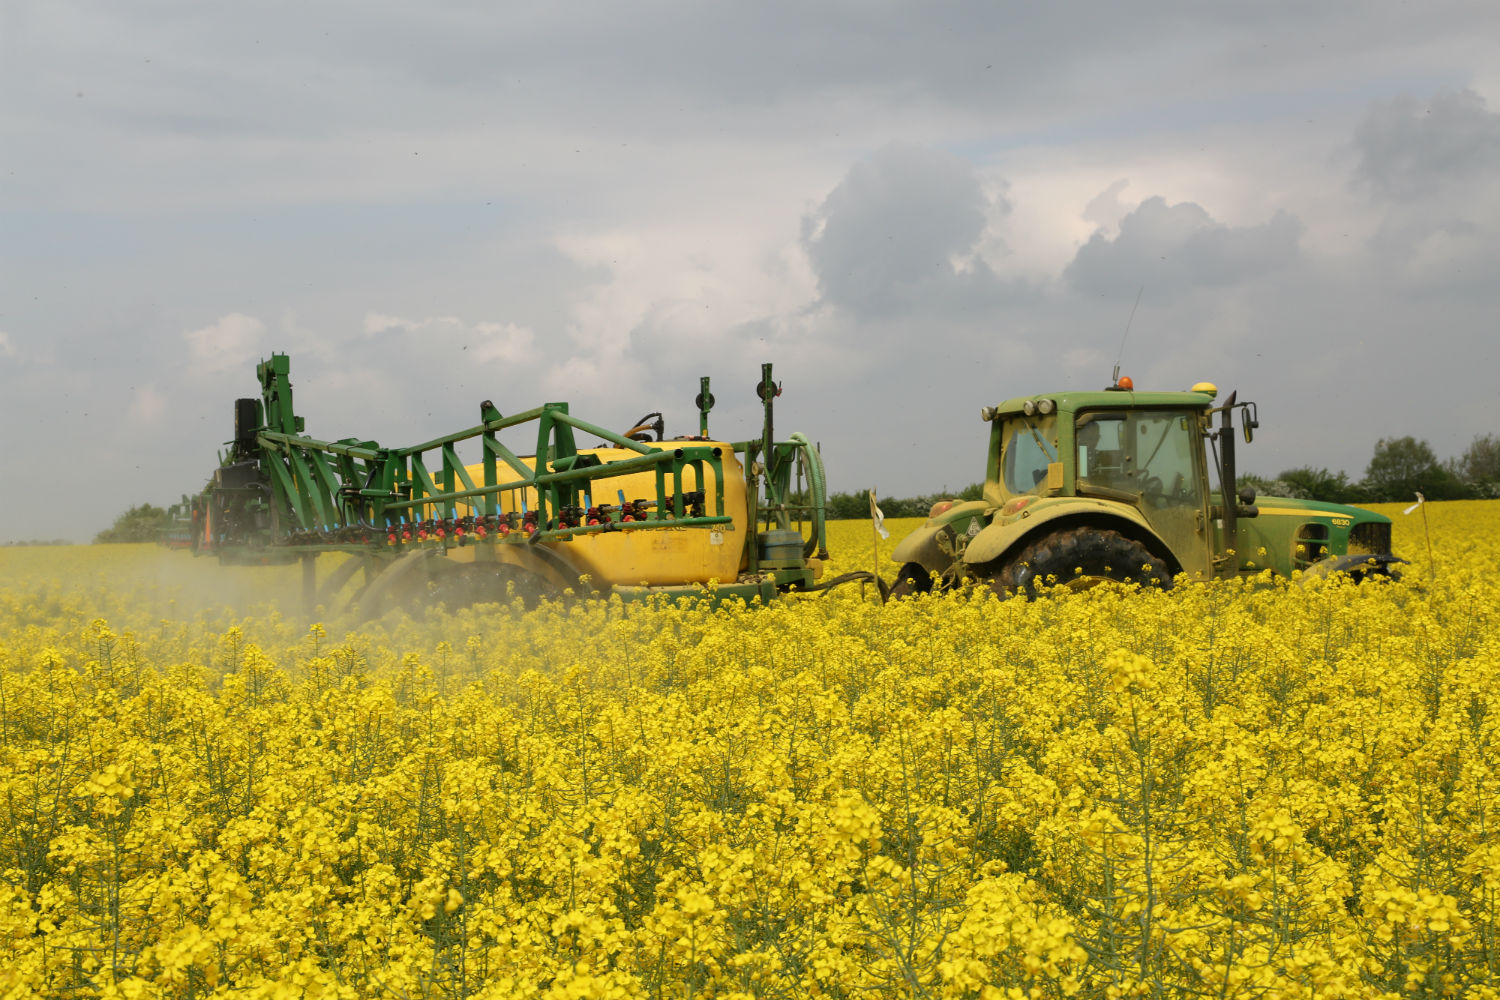 Tractor and sprayer over oilseed rape best practice to protect bees